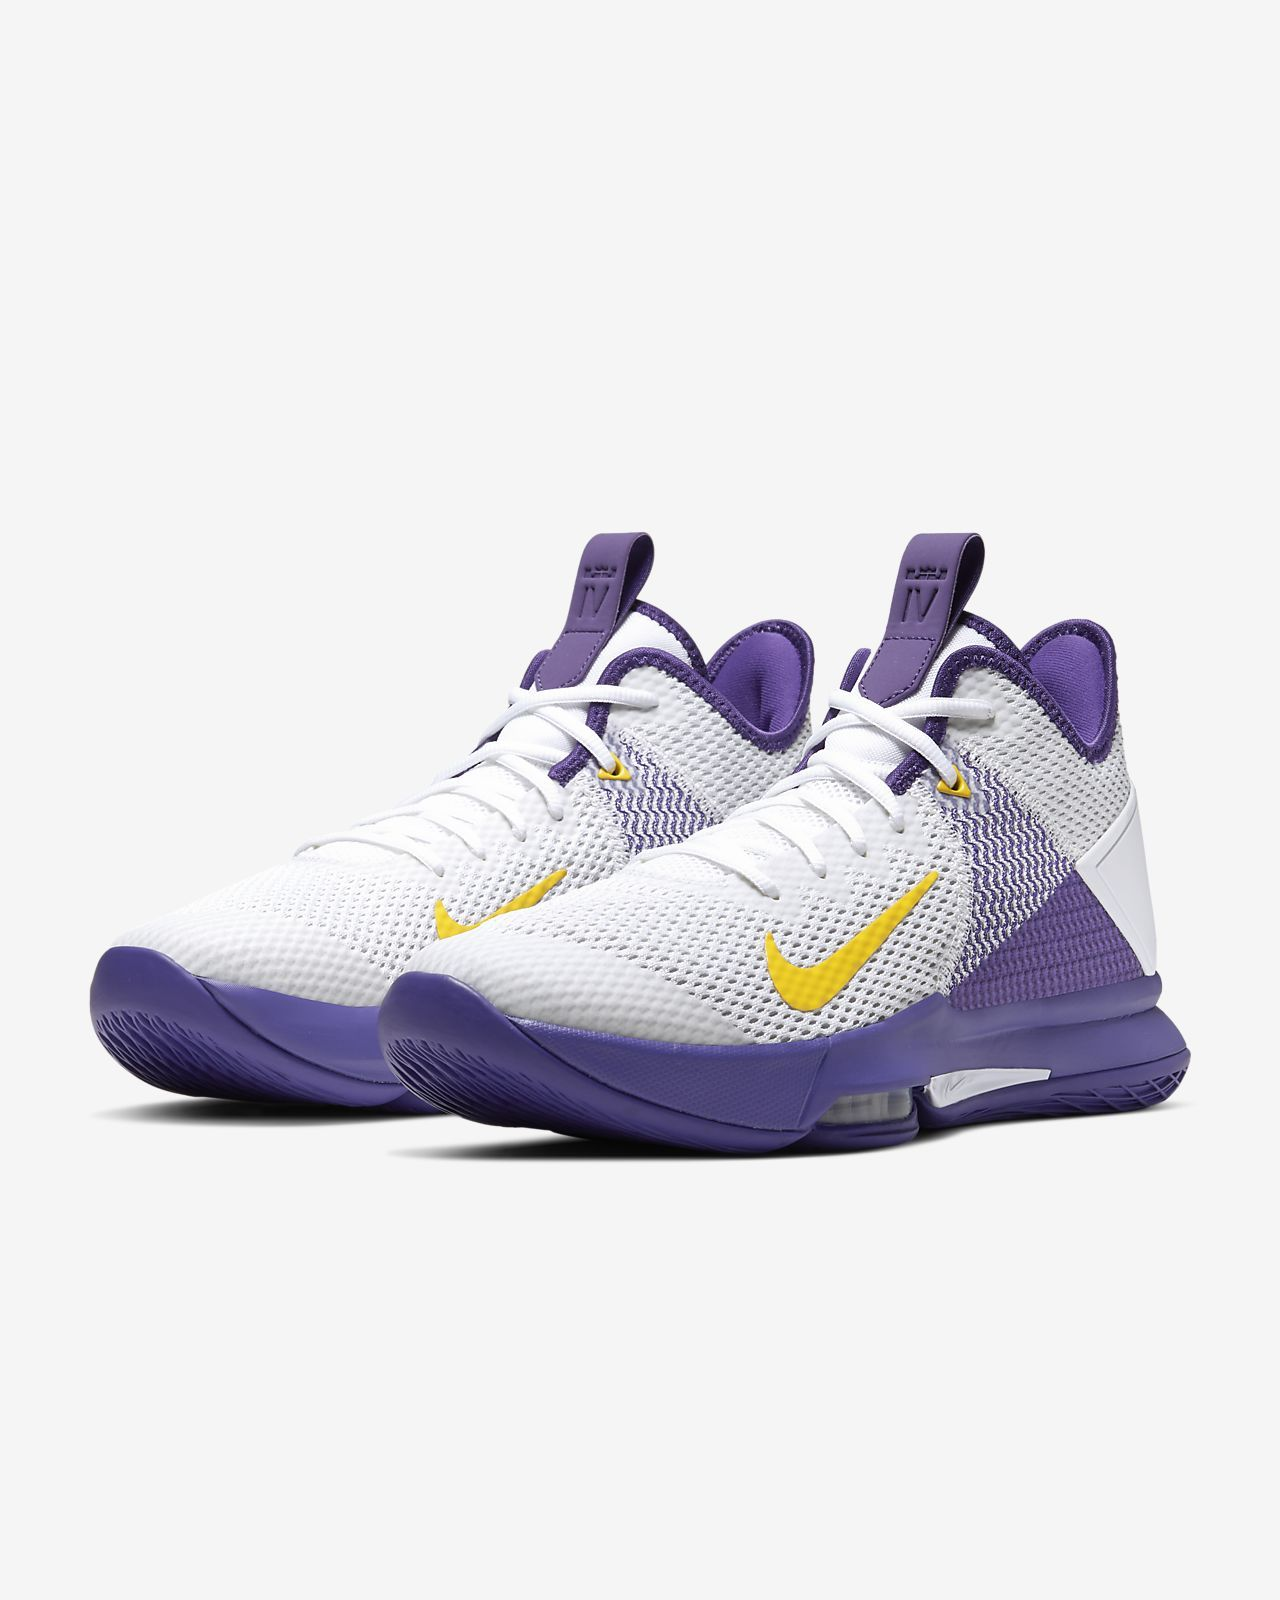 Lebron Witness 4 Basketball Shoe Nike Com In 2020 Girls Basketball Shoes Nike Basketball Shoes Basketball Shoes For Men